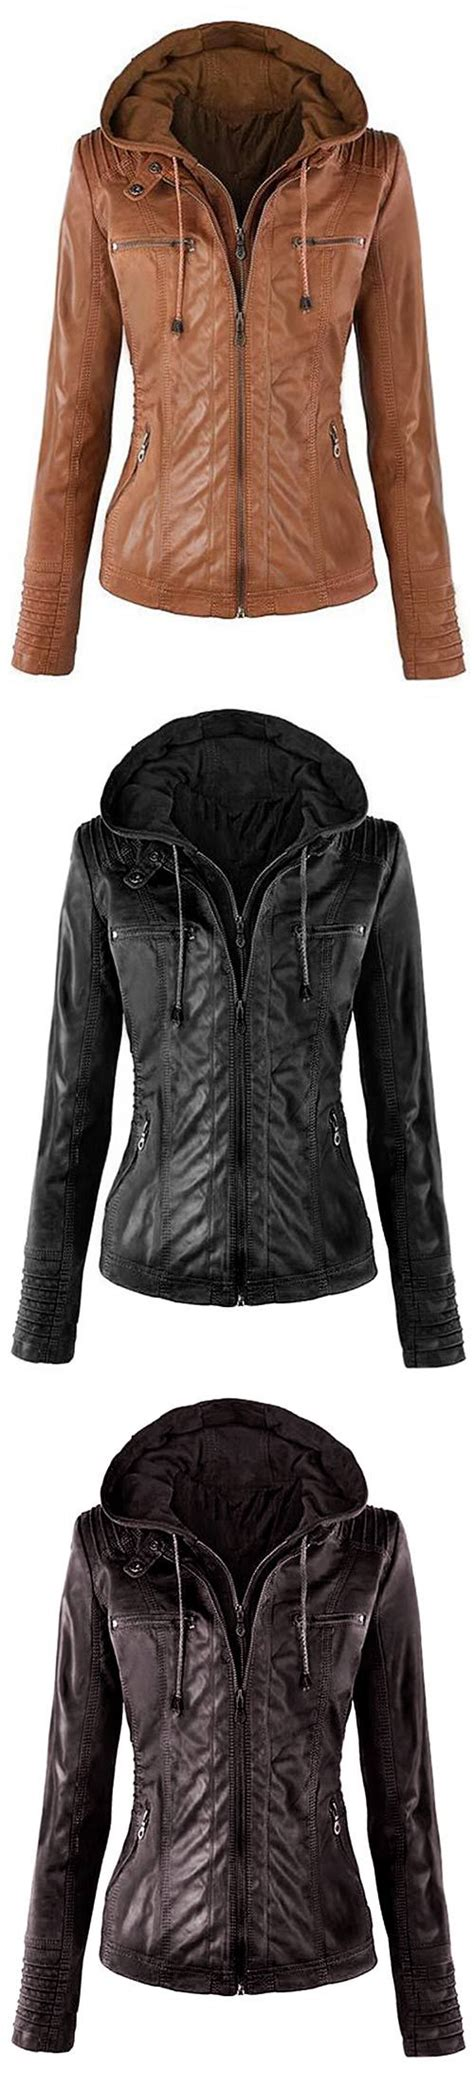 Jaket Cewe Cool 1 1000 ideas about hoods on fur and catsuit